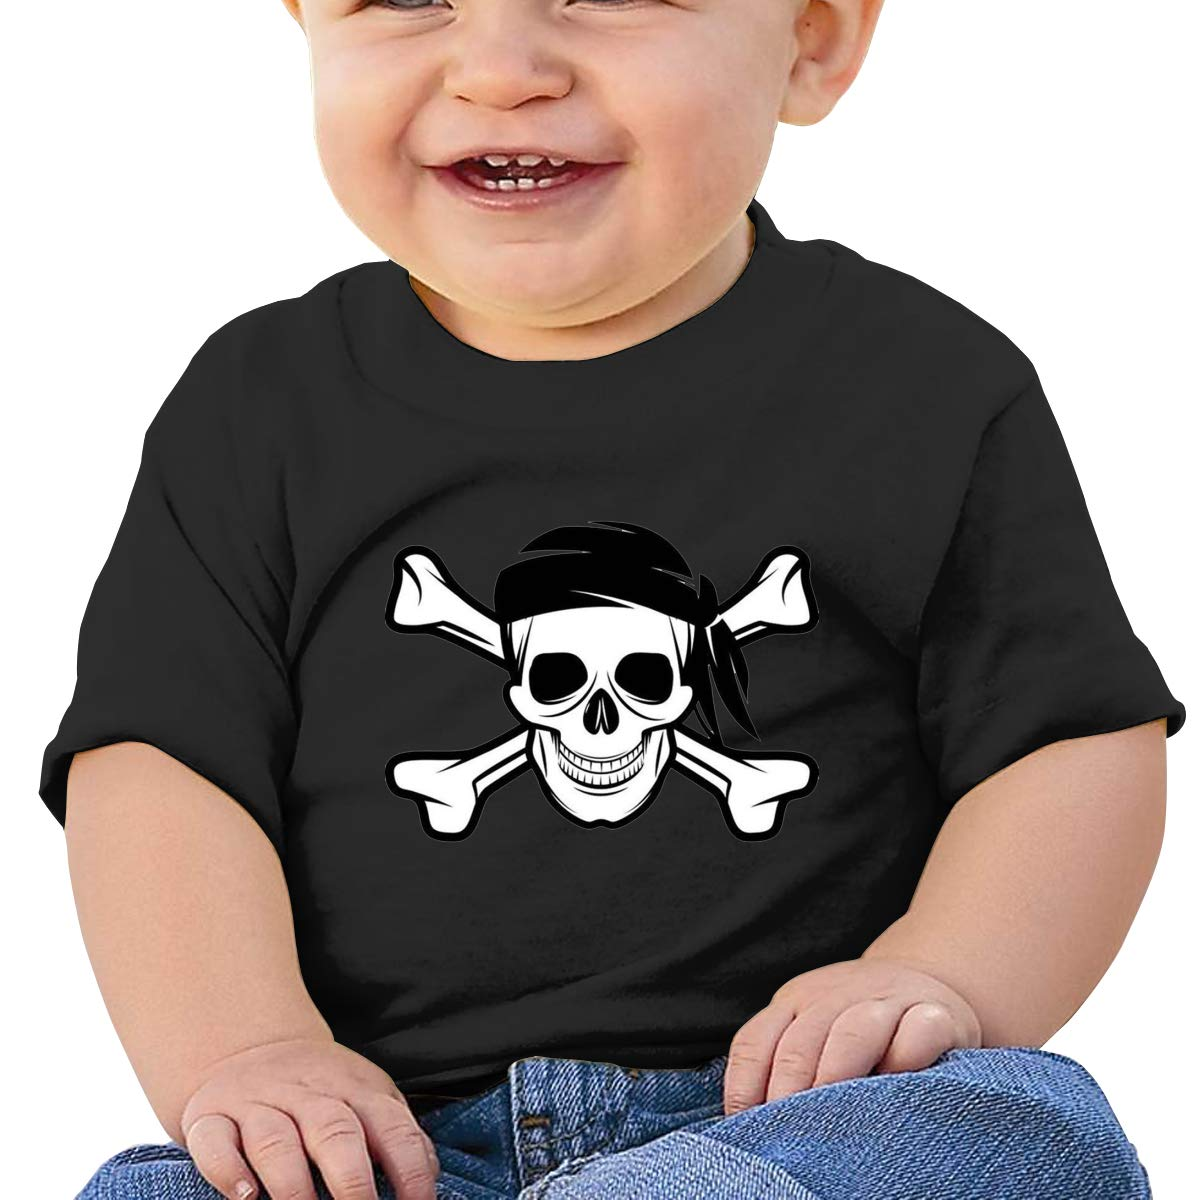 Pirate Skull Toddler Short-Sleeve Tee for Boy Girl Infant Kids T-Shirt On Newborn 6-18 Months